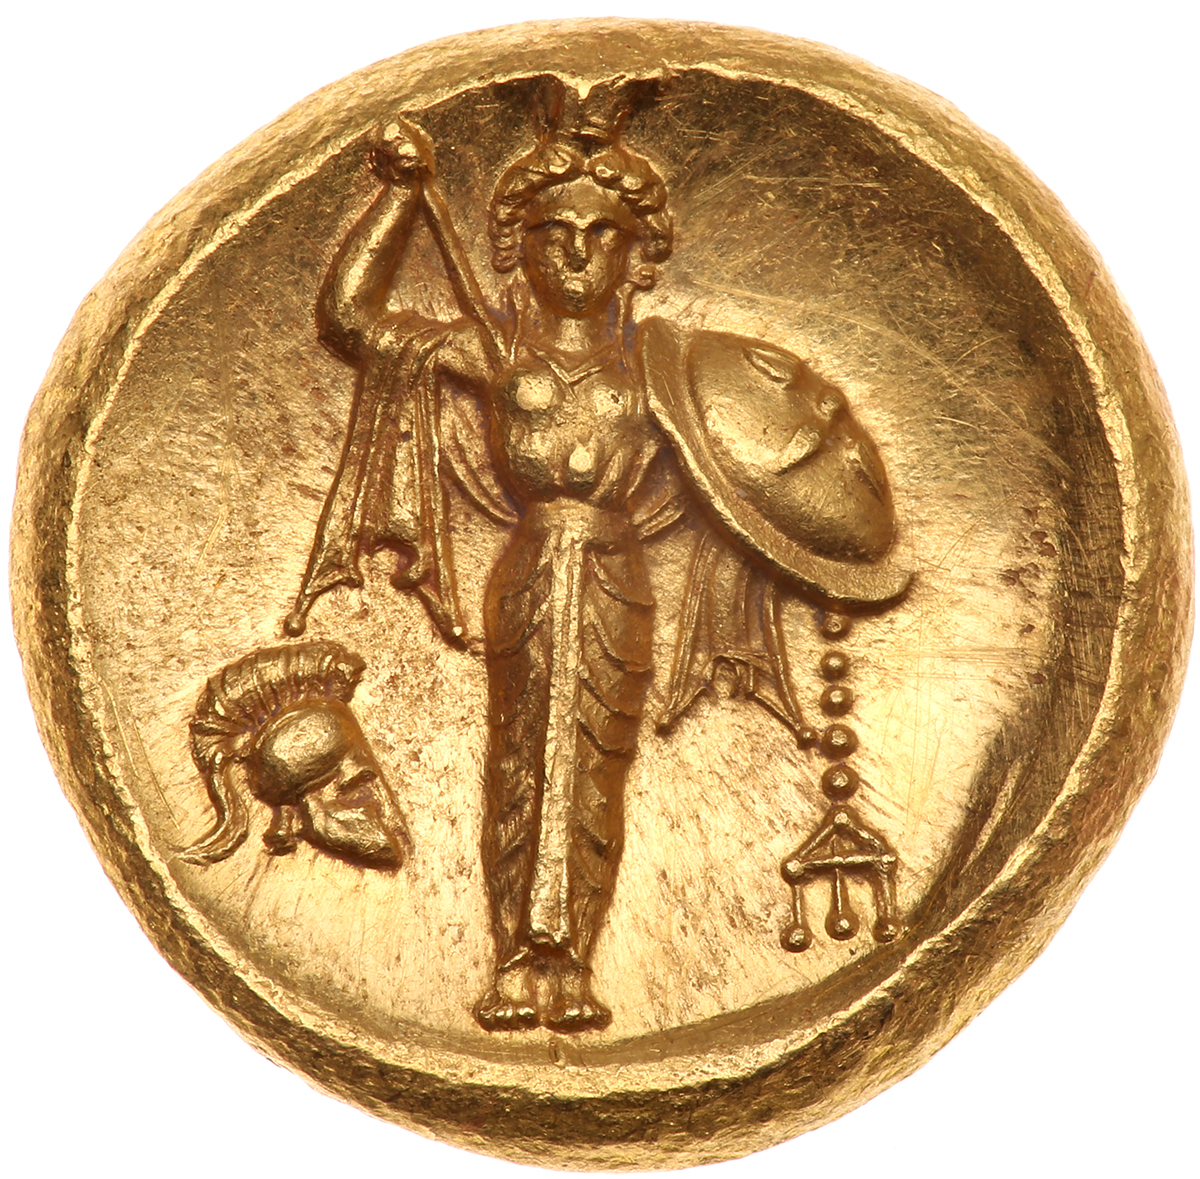 Stamp Auction - ancient greek coinage - Pre-Long Beach